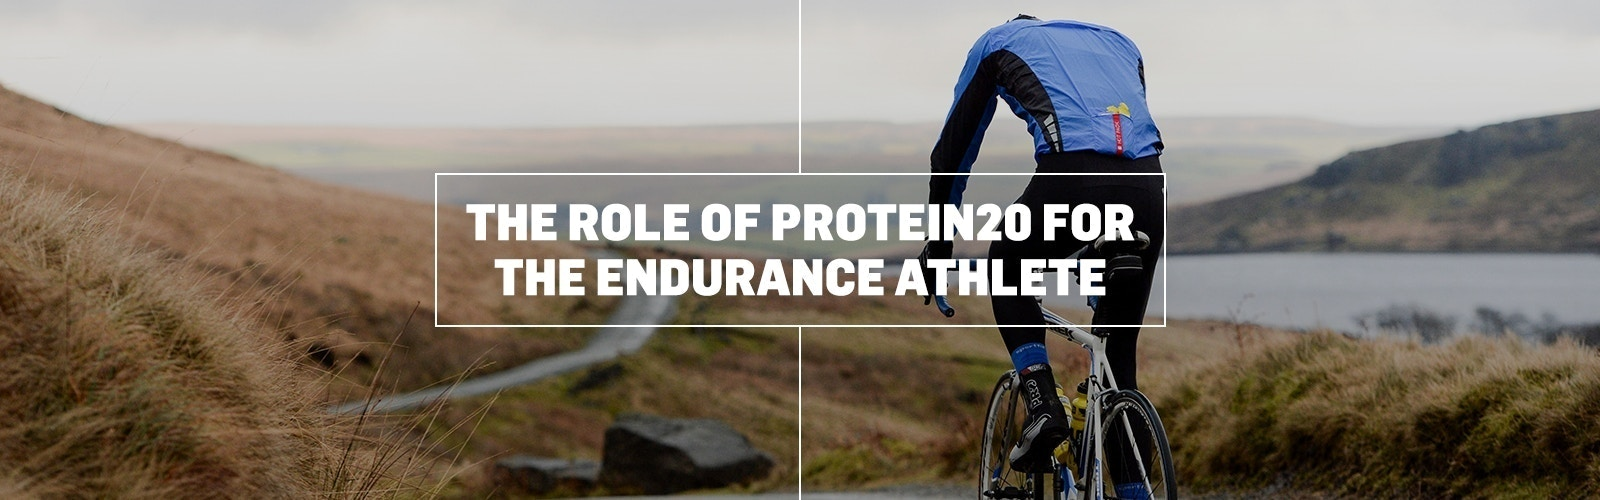 THE ROLE OF PROTEIN FOR THE ENDURANCE ATHLETE